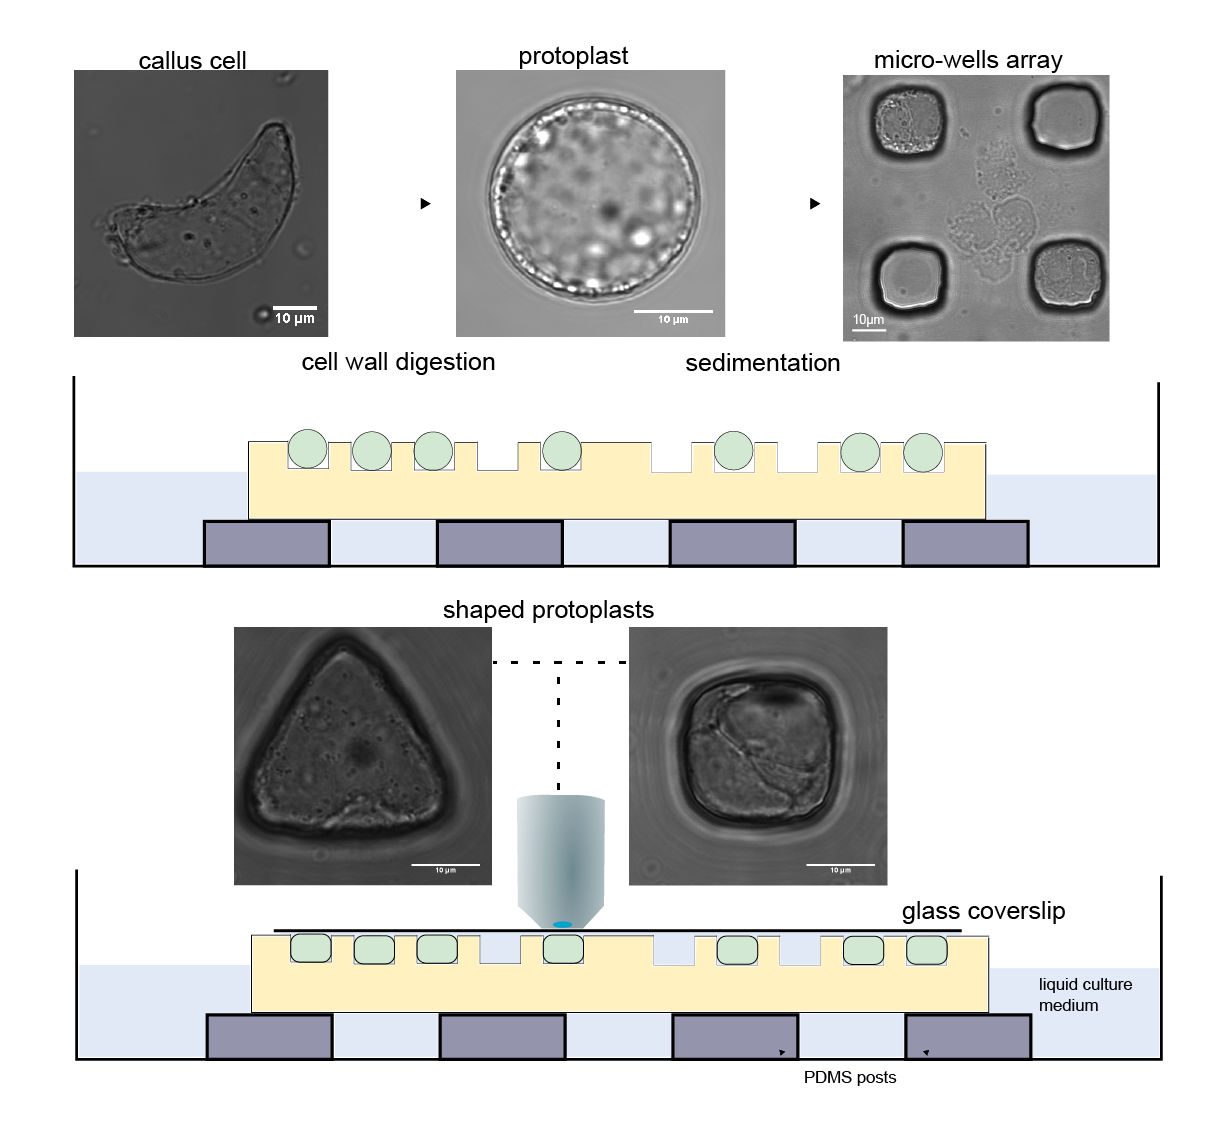 Experimental set-up used for the confinement of protoplasts in different geometries (Pauline Durand)